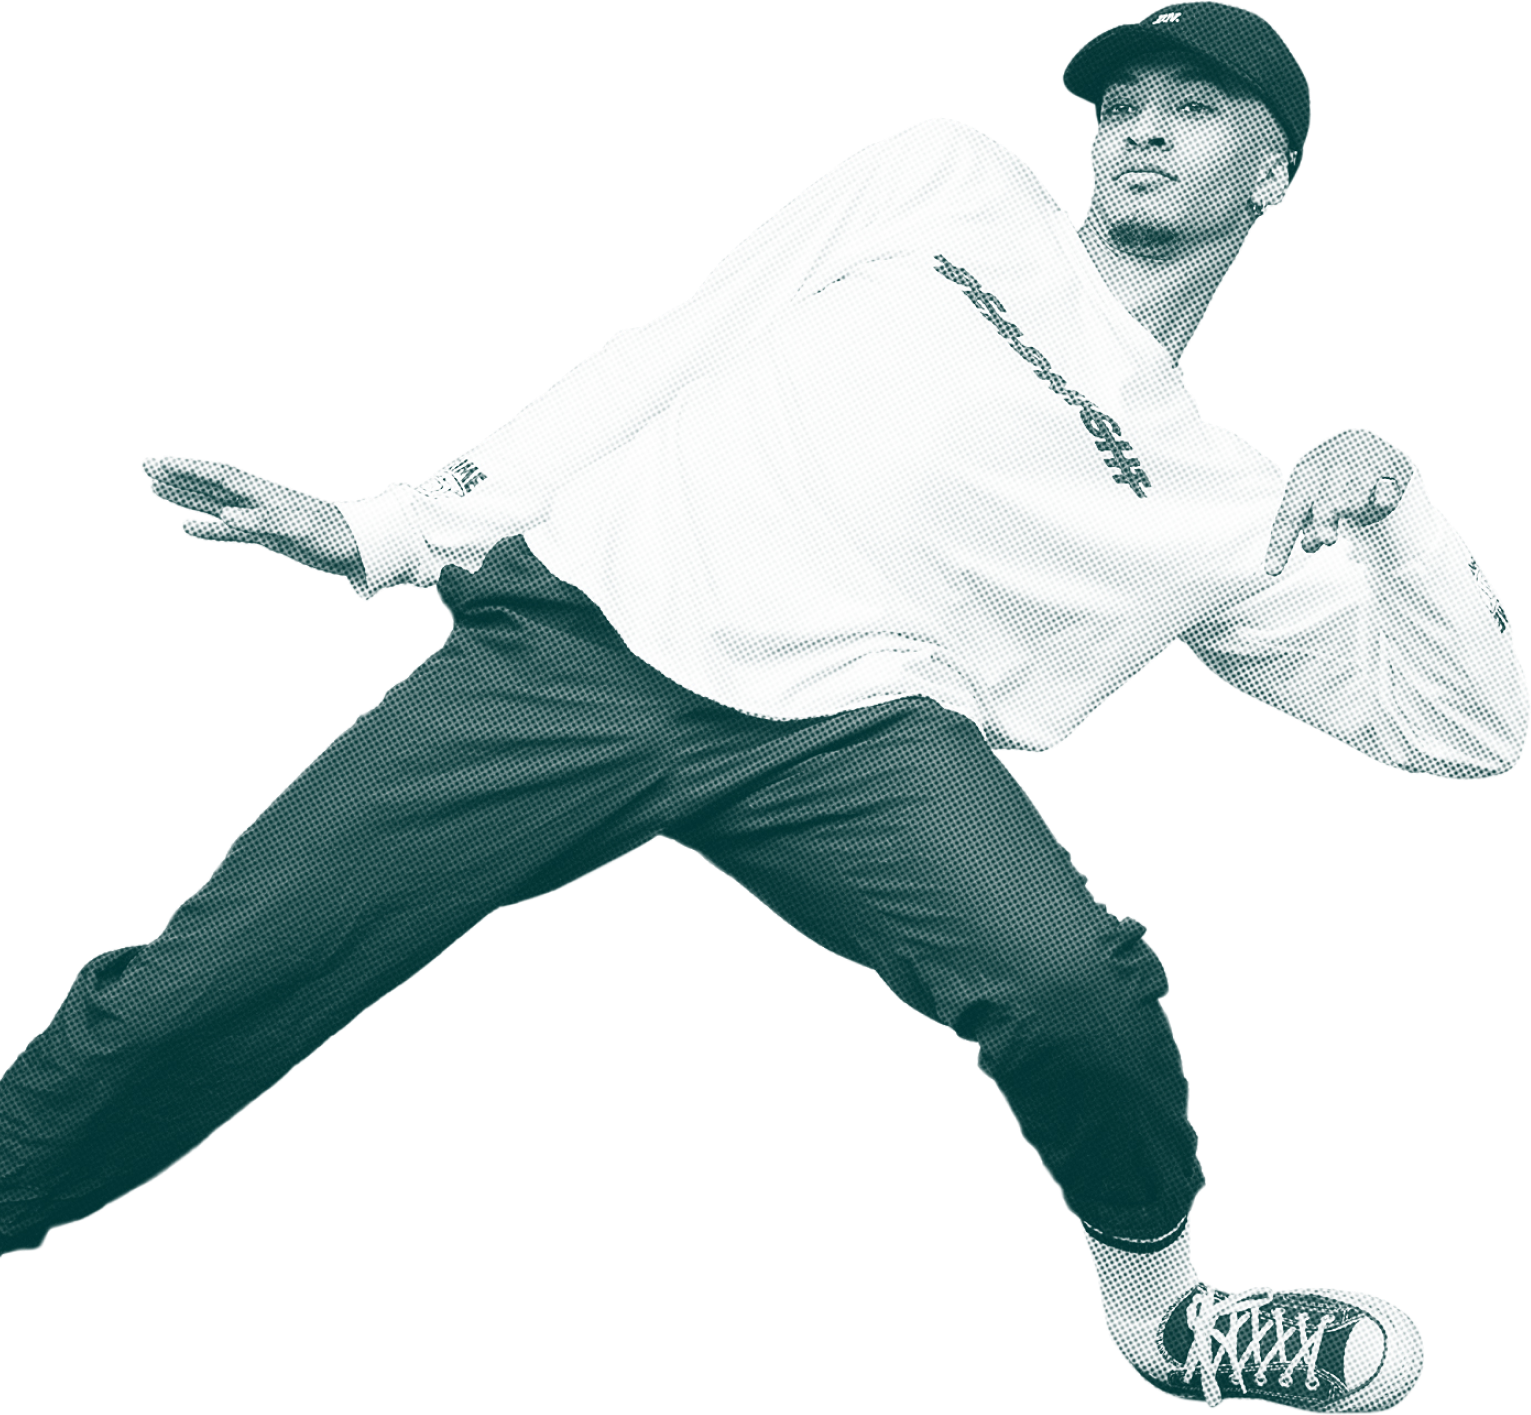 A dancer wearing a baseball cap, white long sleeved top, trousers and trainers. They are a male presenting person of colour with facial hair and an ear ring.